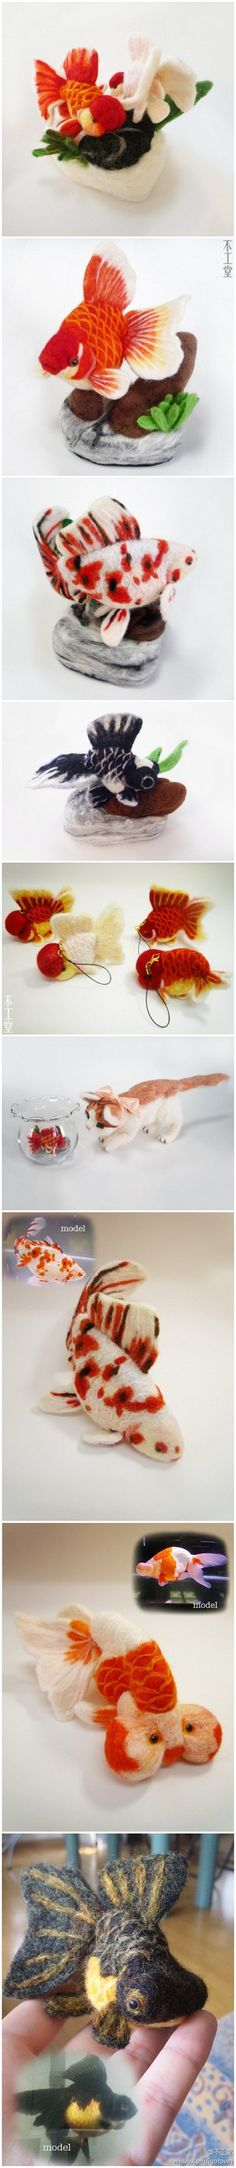 Put into a fish bowl for the kitchen